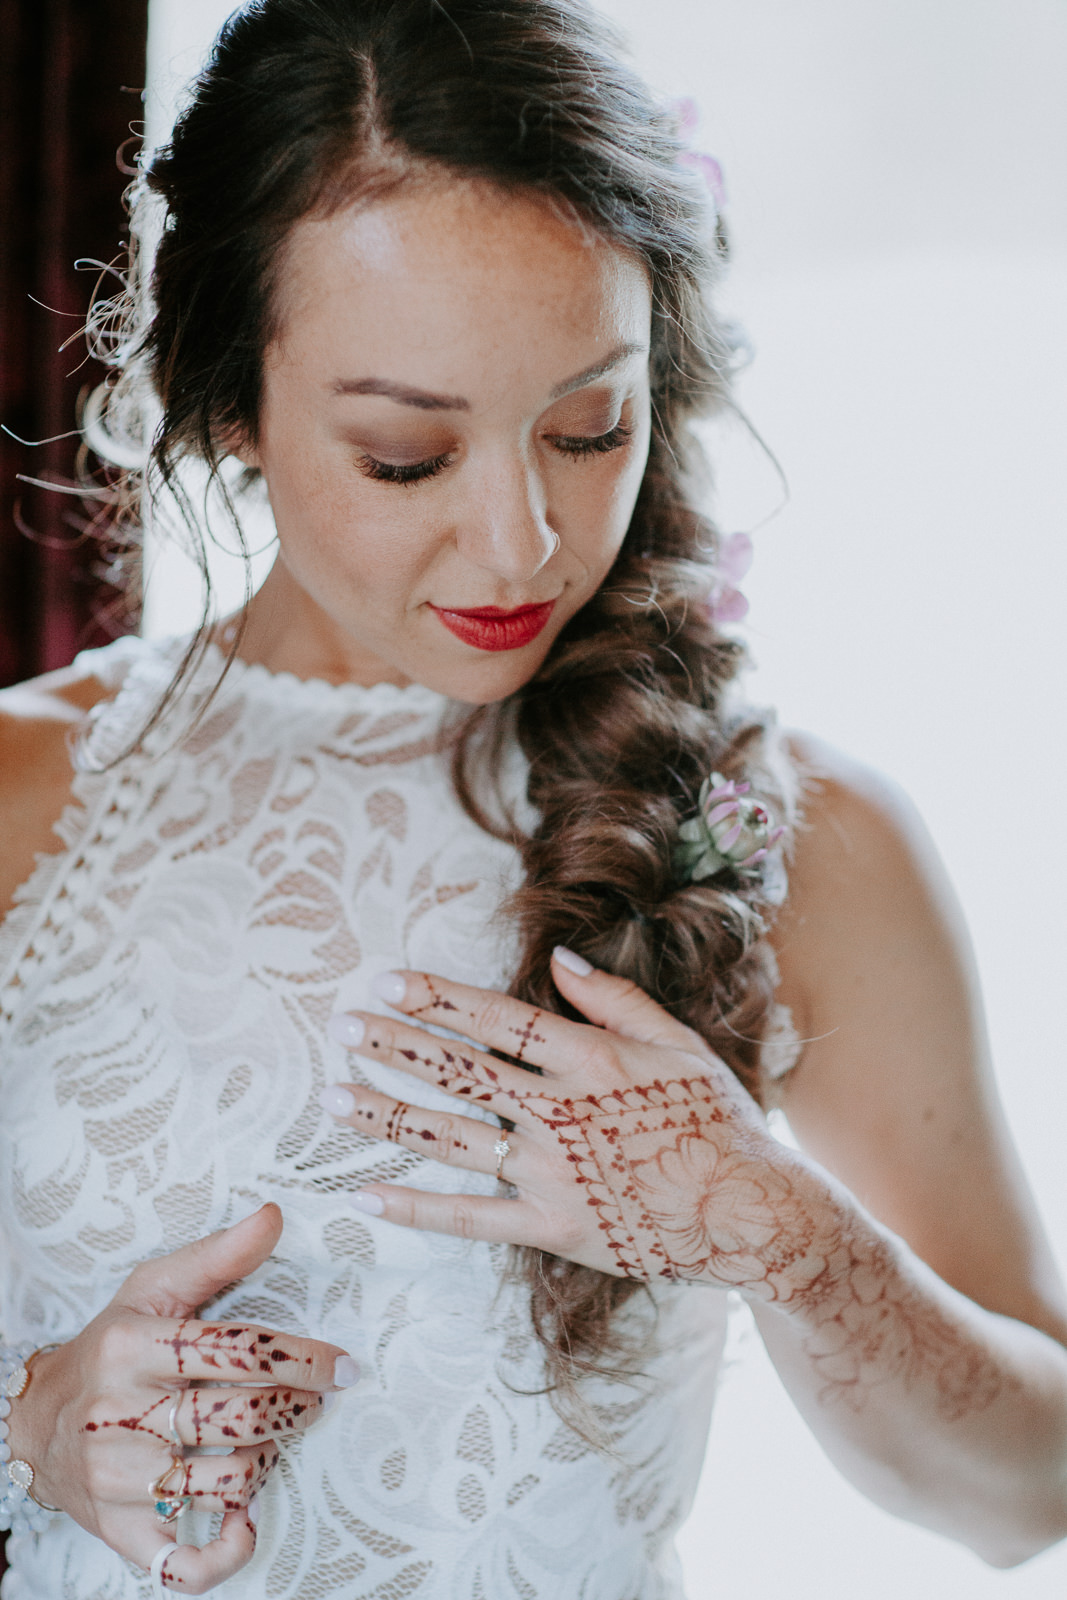 Close up of bride in white dress showing her henna hands and arms